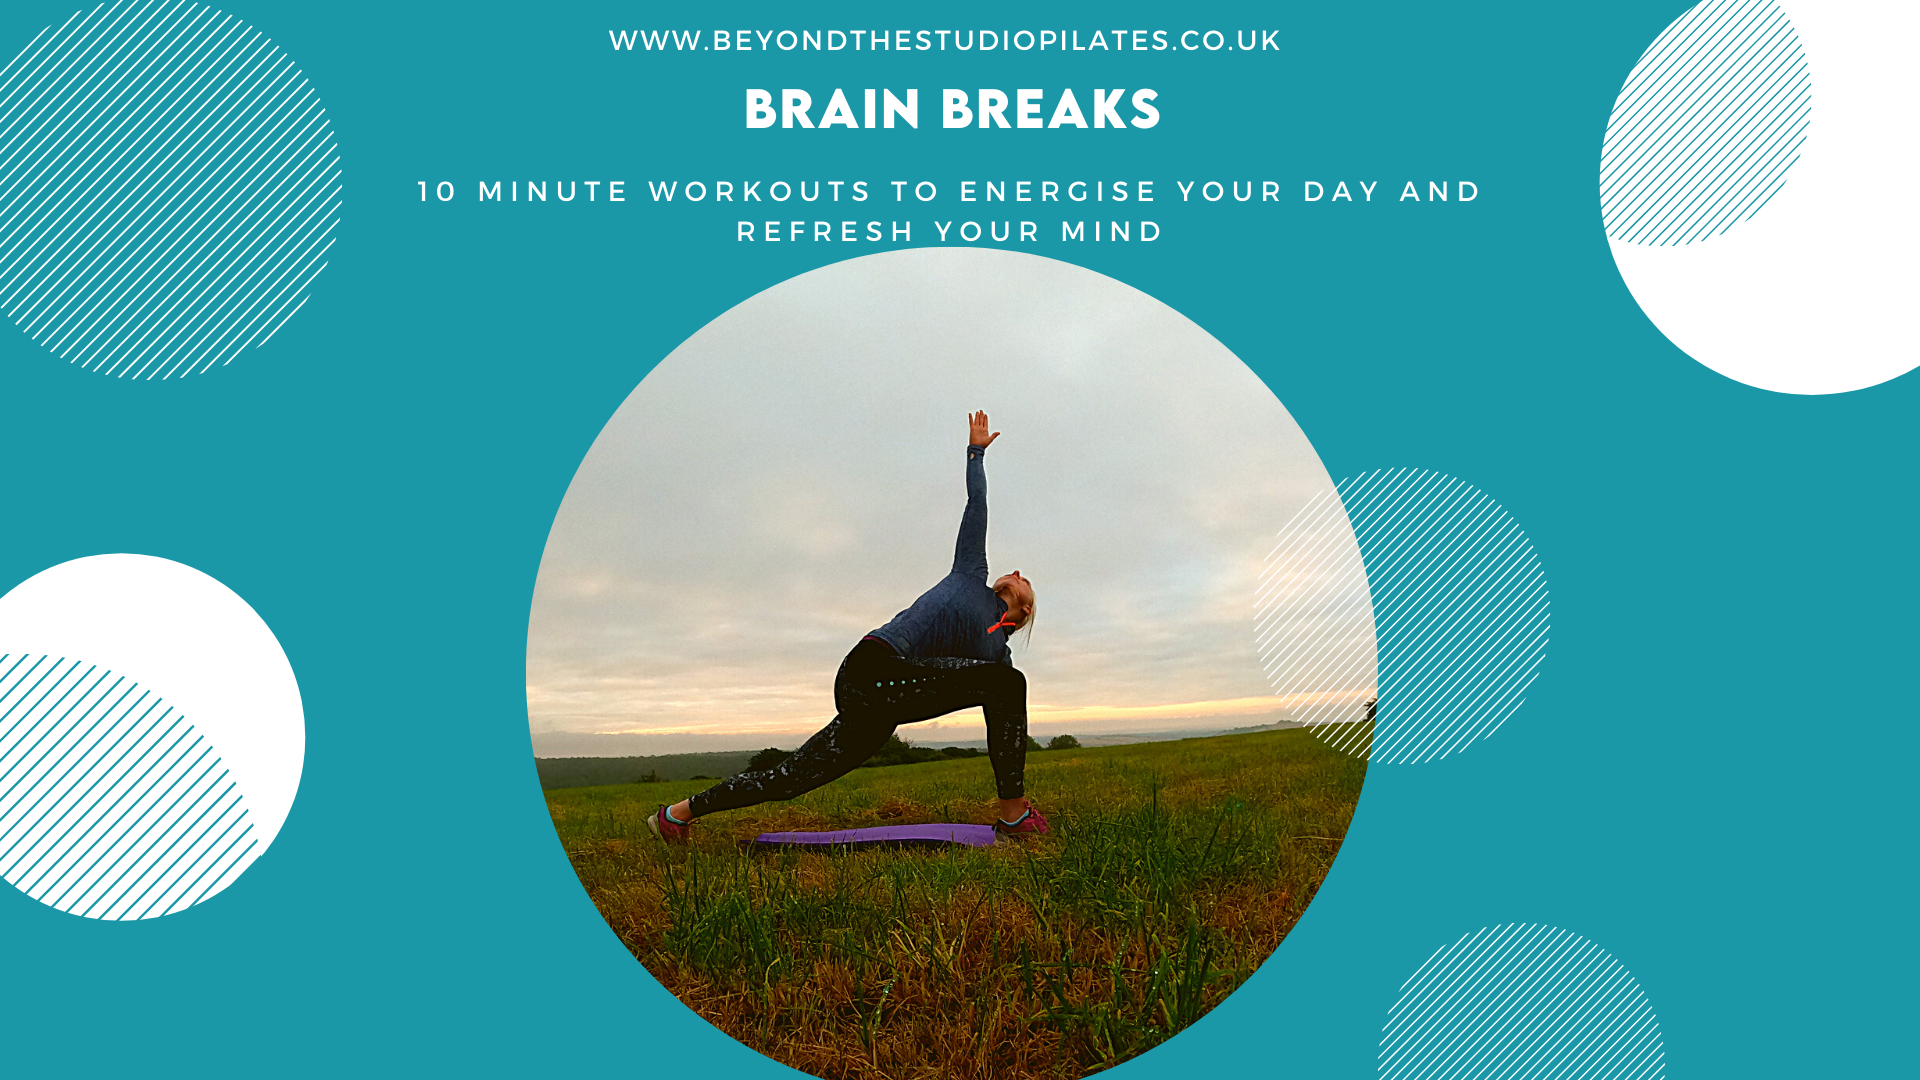 How taking a 'Brain Break' everyday can really help your health and fitness